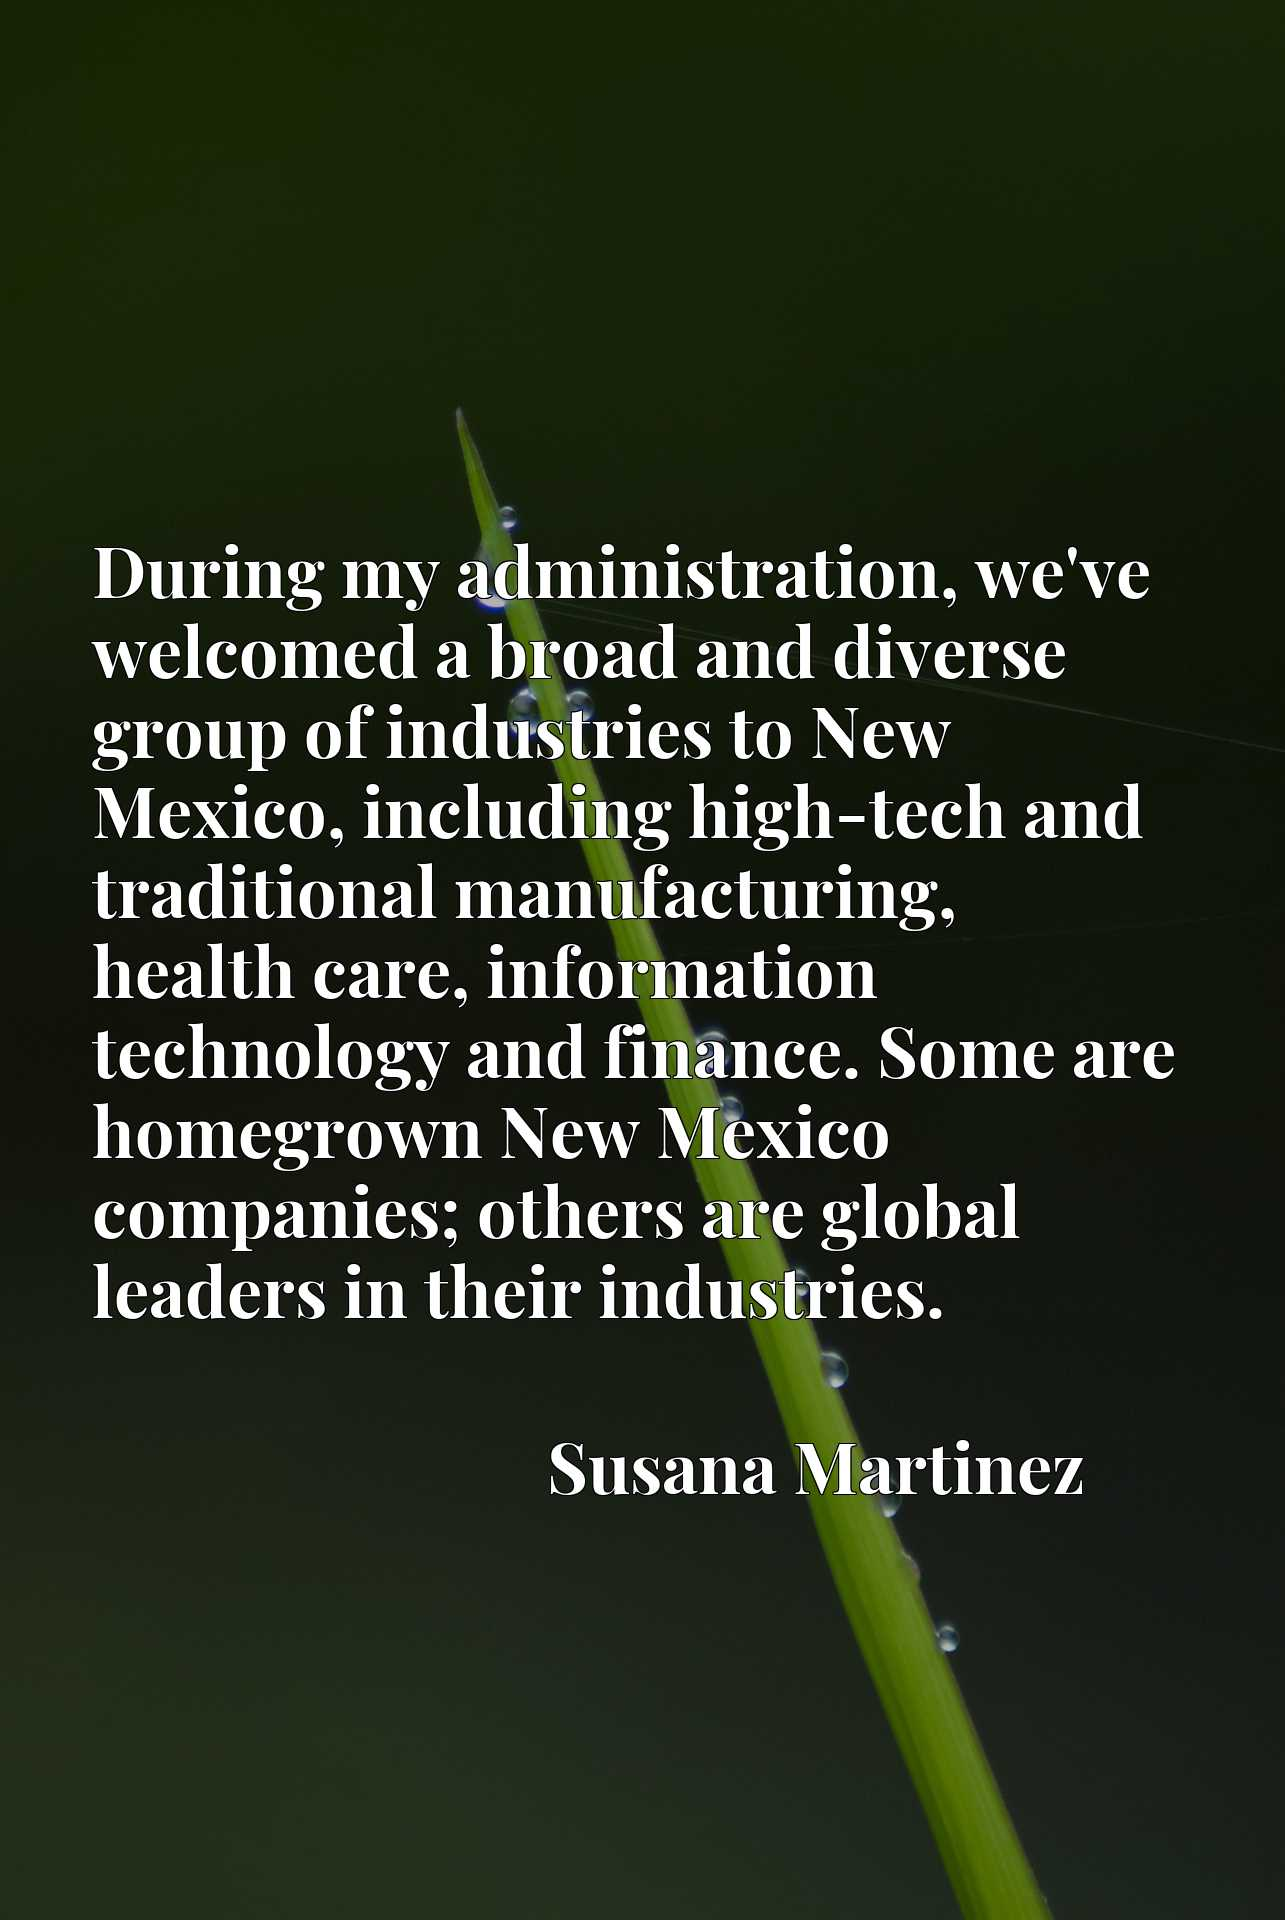 During my administration, we've welcomed a broad and diverse group of industries to New Mexico, including high-tech and traditional manufacturing, health care, information technology and finance. Some are homegrown New Mexico companies; others are global leaders in their industries.